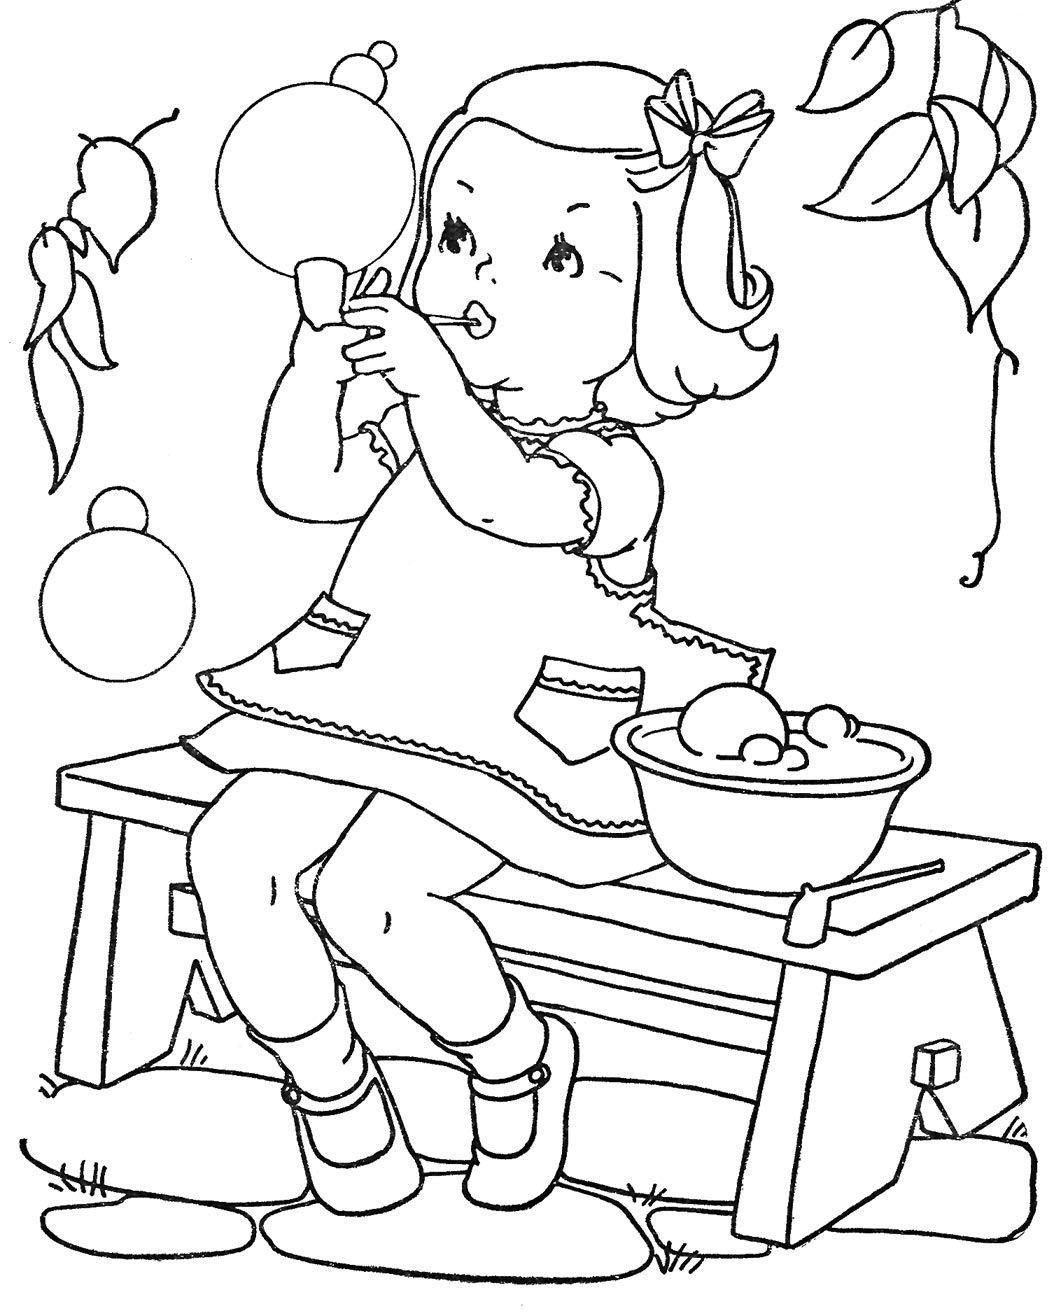 20 vintage coloring book images free to print maybe use for homemade paint with - Kids Paint Book